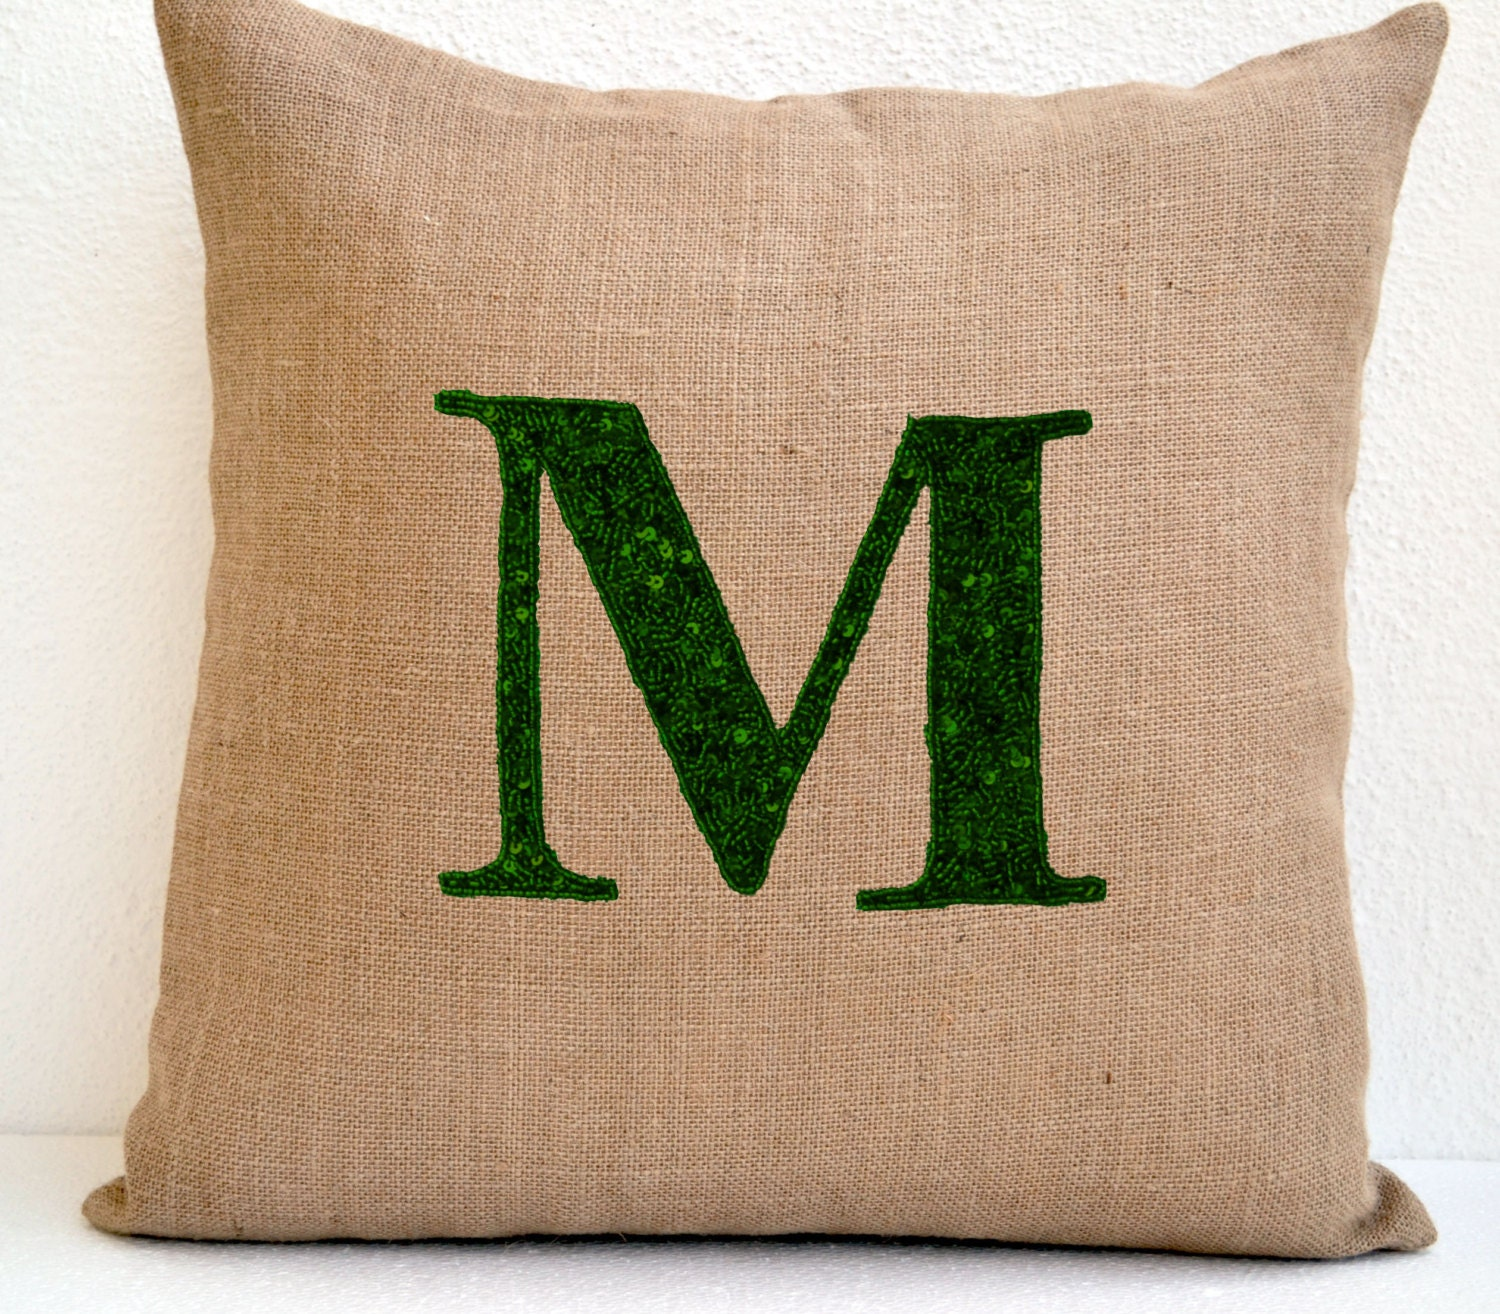 Decorative Pillows With Sequins : Personalized Sequin Monogram Decorative Pillow Cover Sequin